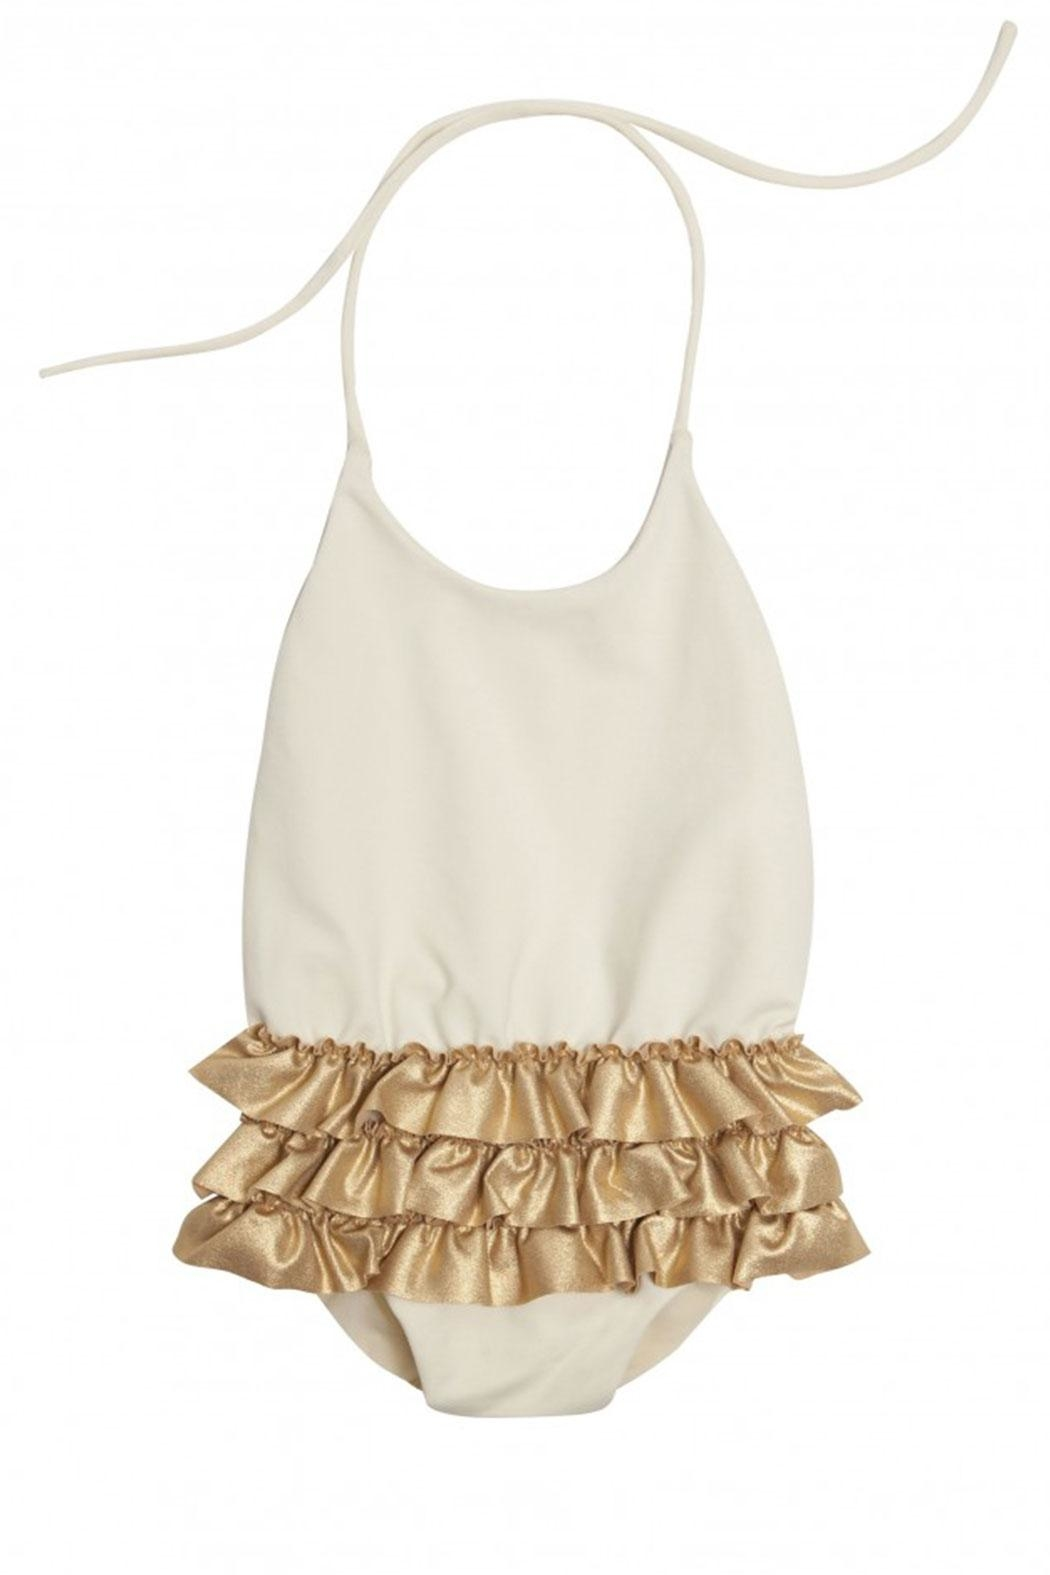 Little Creative Factory Baby Chic Bathing Suit From